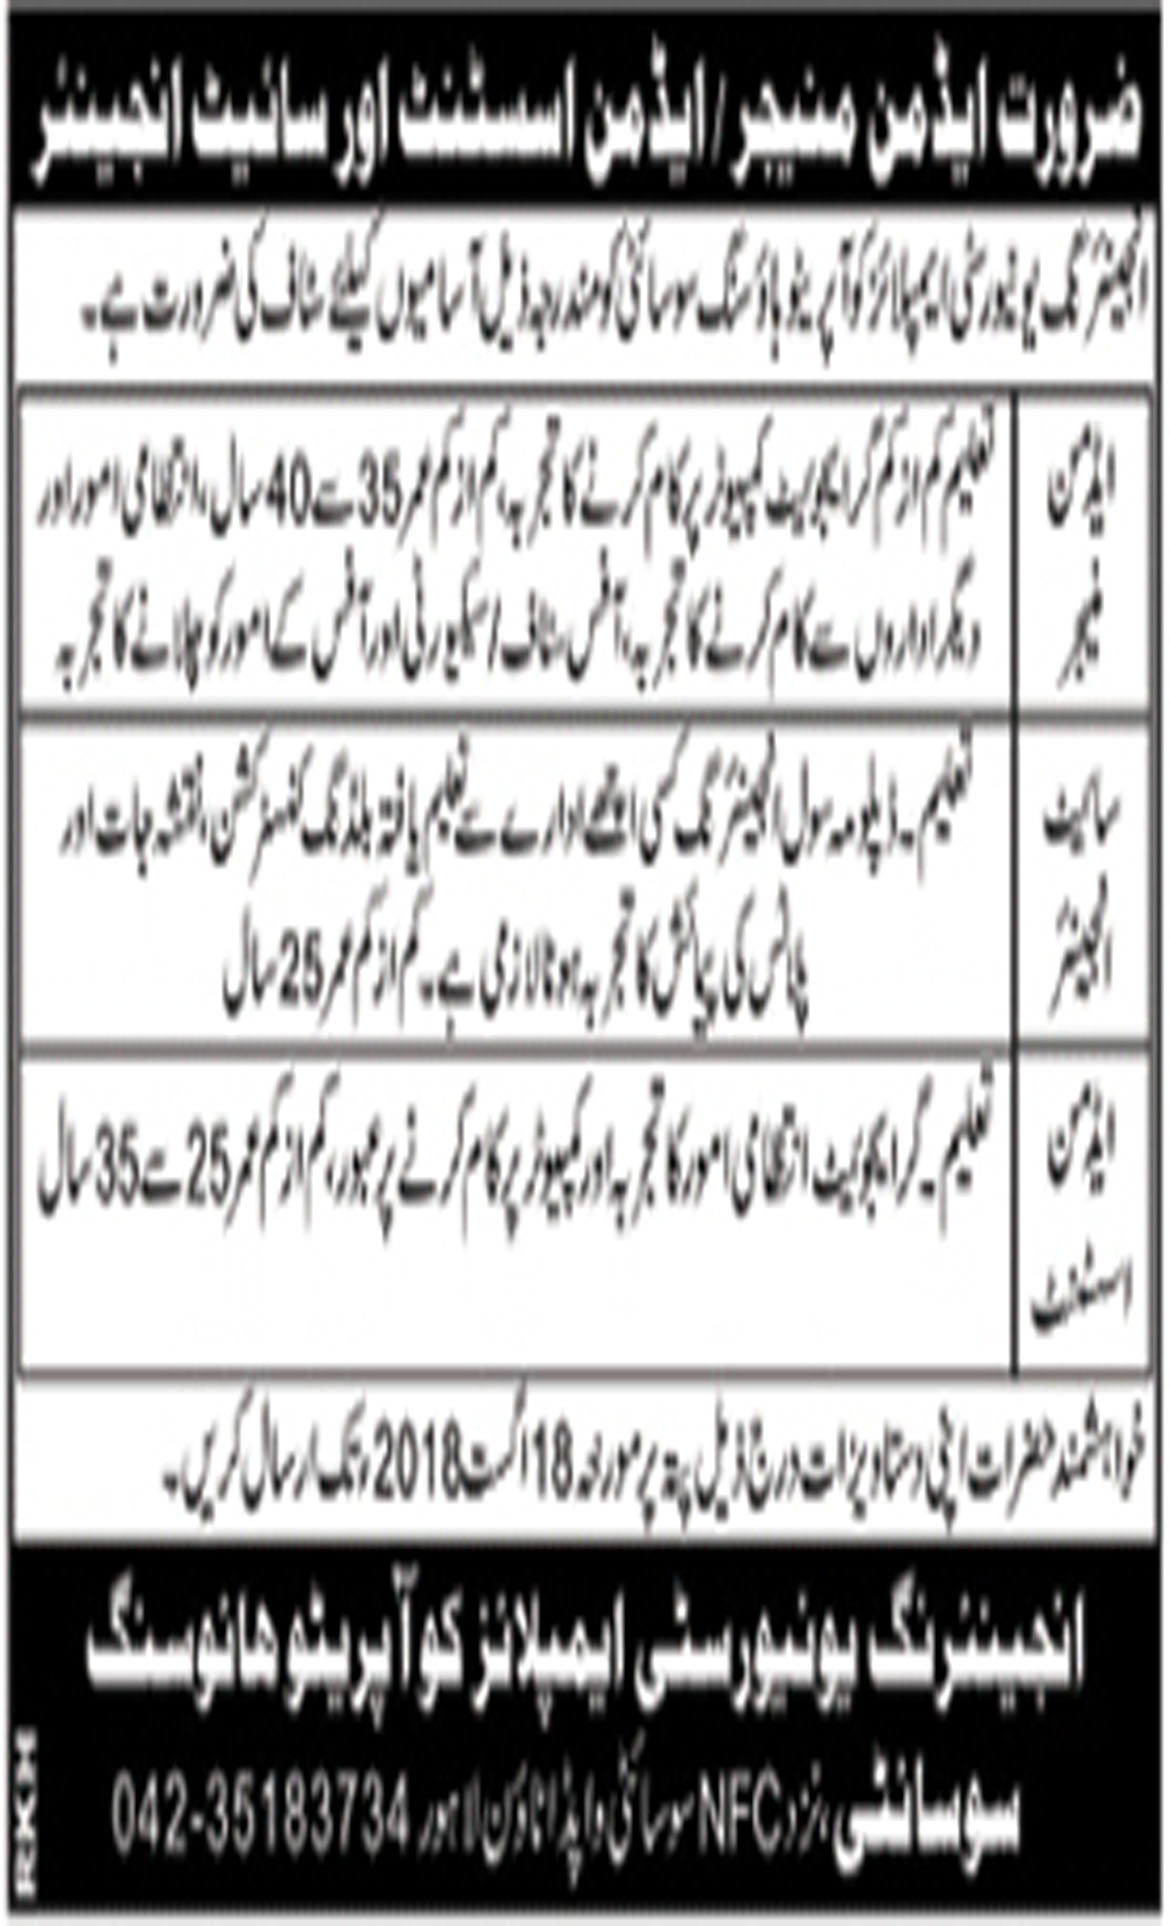 Job In Engineering University Employees Cooperative Housing Society 10 Aug 2018